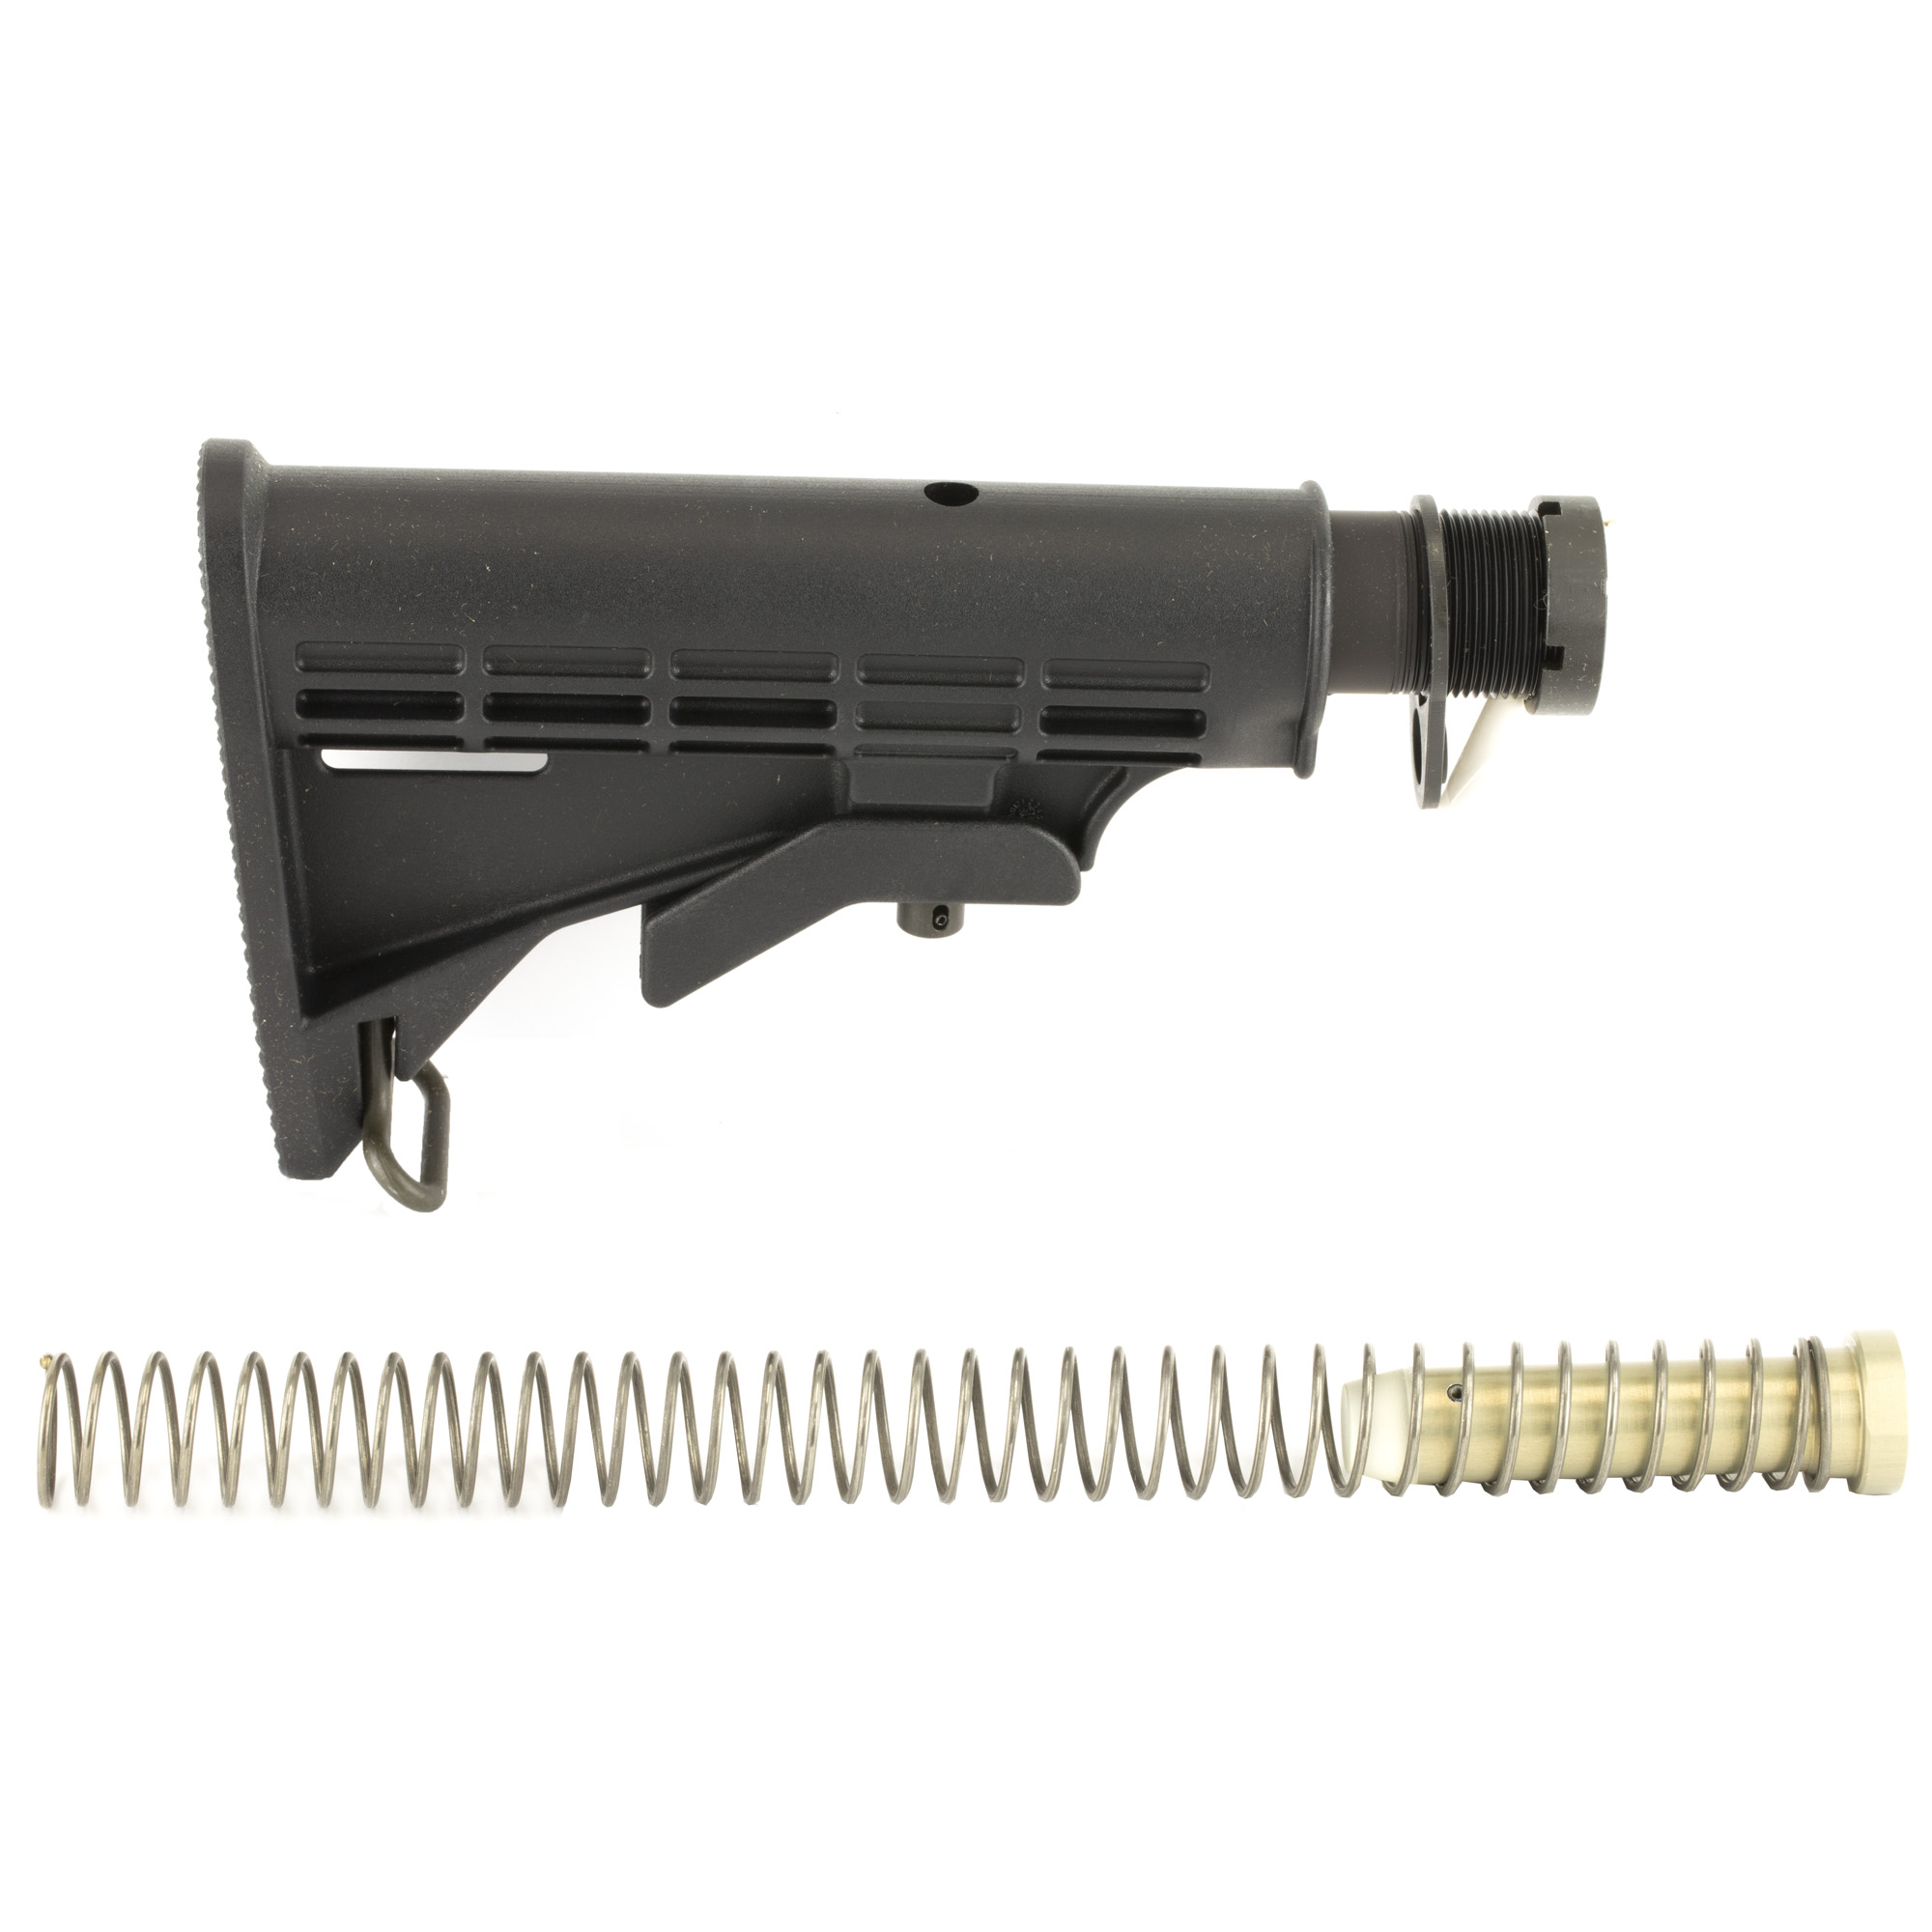 "This kit comes with everything you need to complete your lower receiver so you can install your collapsible stock. Included is your classic M4 style buttstock"" six position mil spec buffer tube"" carbine length recoil spring"" carbine length recoil buffer"" receiver end plate"" and castle nut. LBE Unlimited is a leading producer of US Made gun parts and accessories"